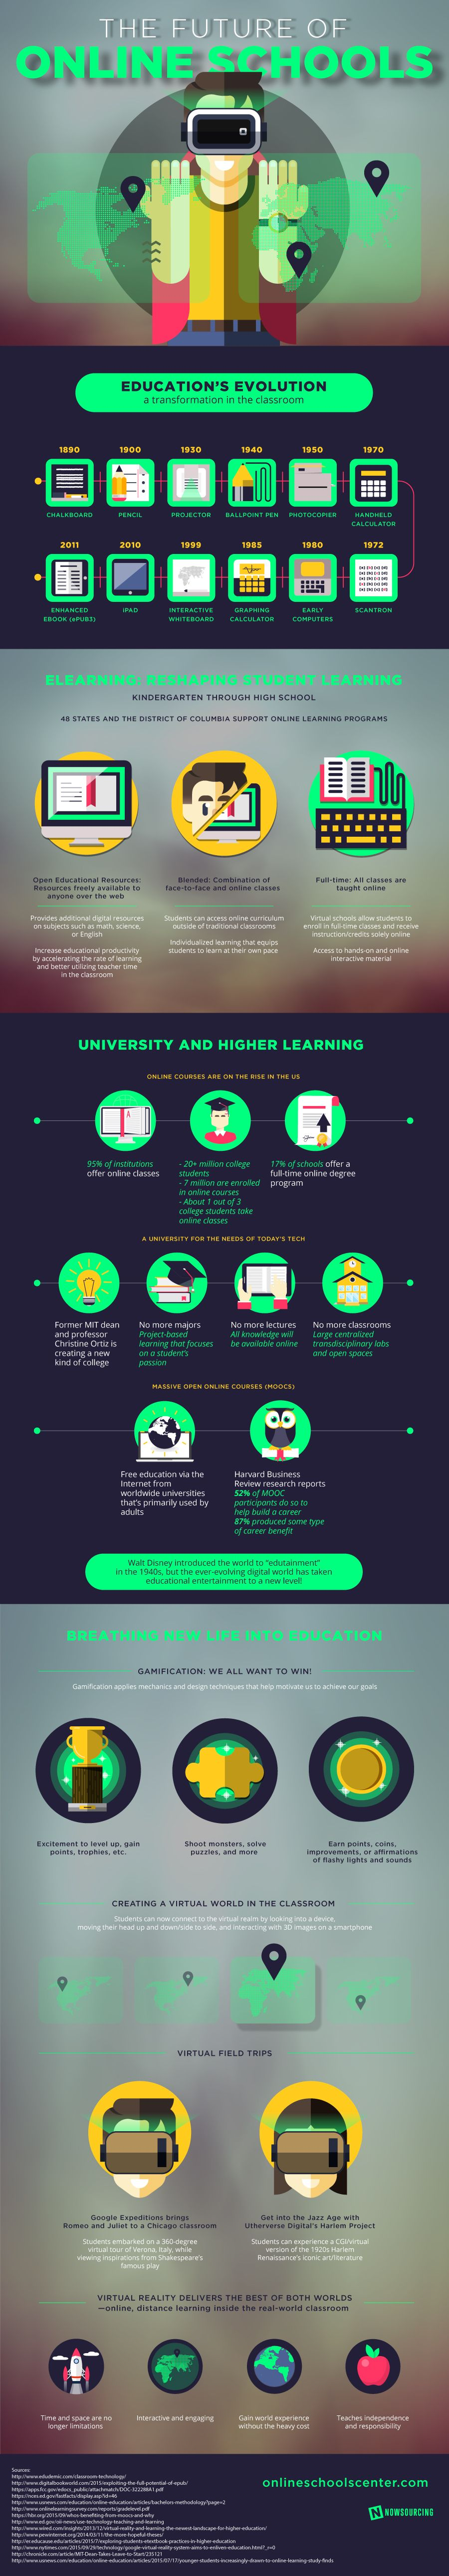 The Future of Online Schools #Infographic